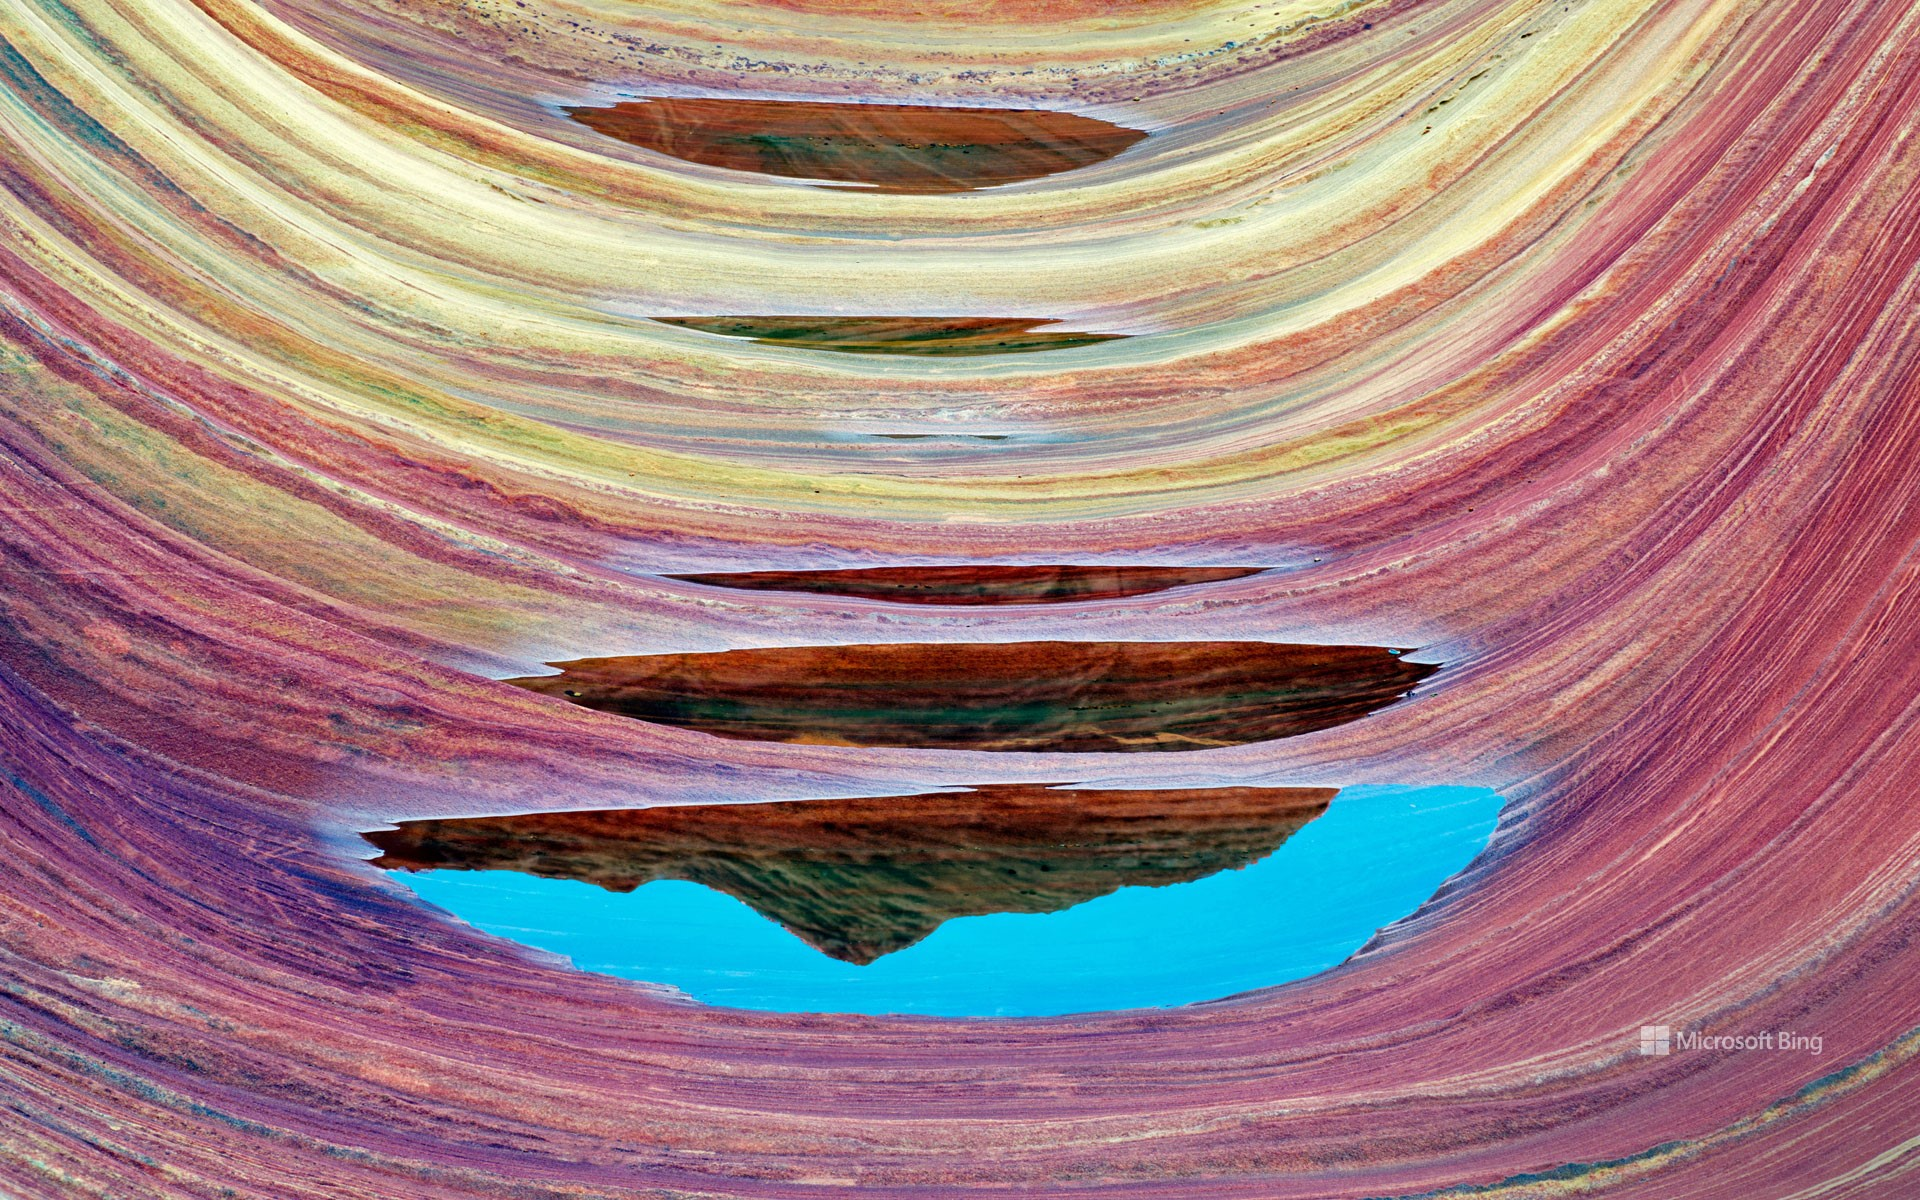 'The Wave' sandstone formation with pools of water in Vermilion Cliffs National Monument, Arizona